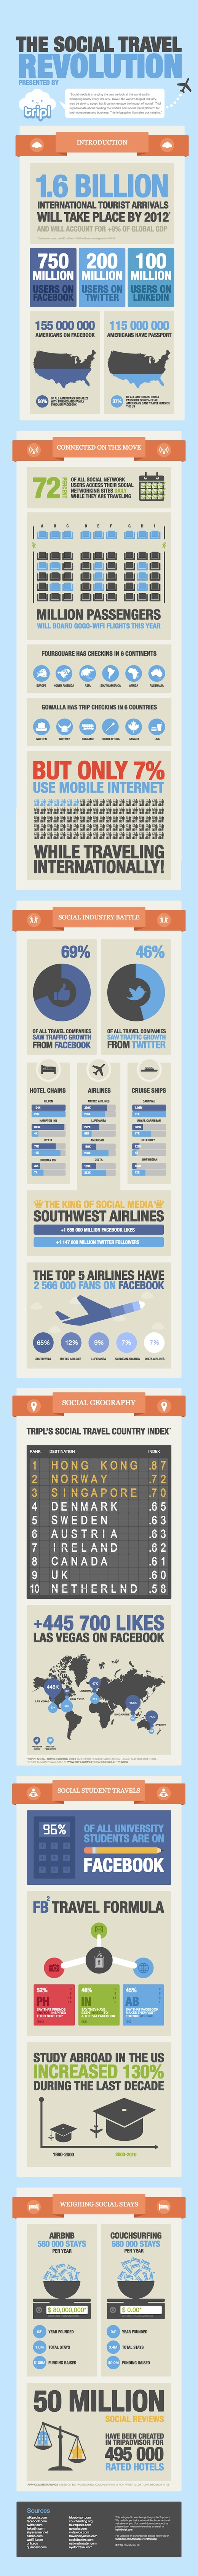 tripl social travel infographic1 How the social Web is transforming travel [Infographic]